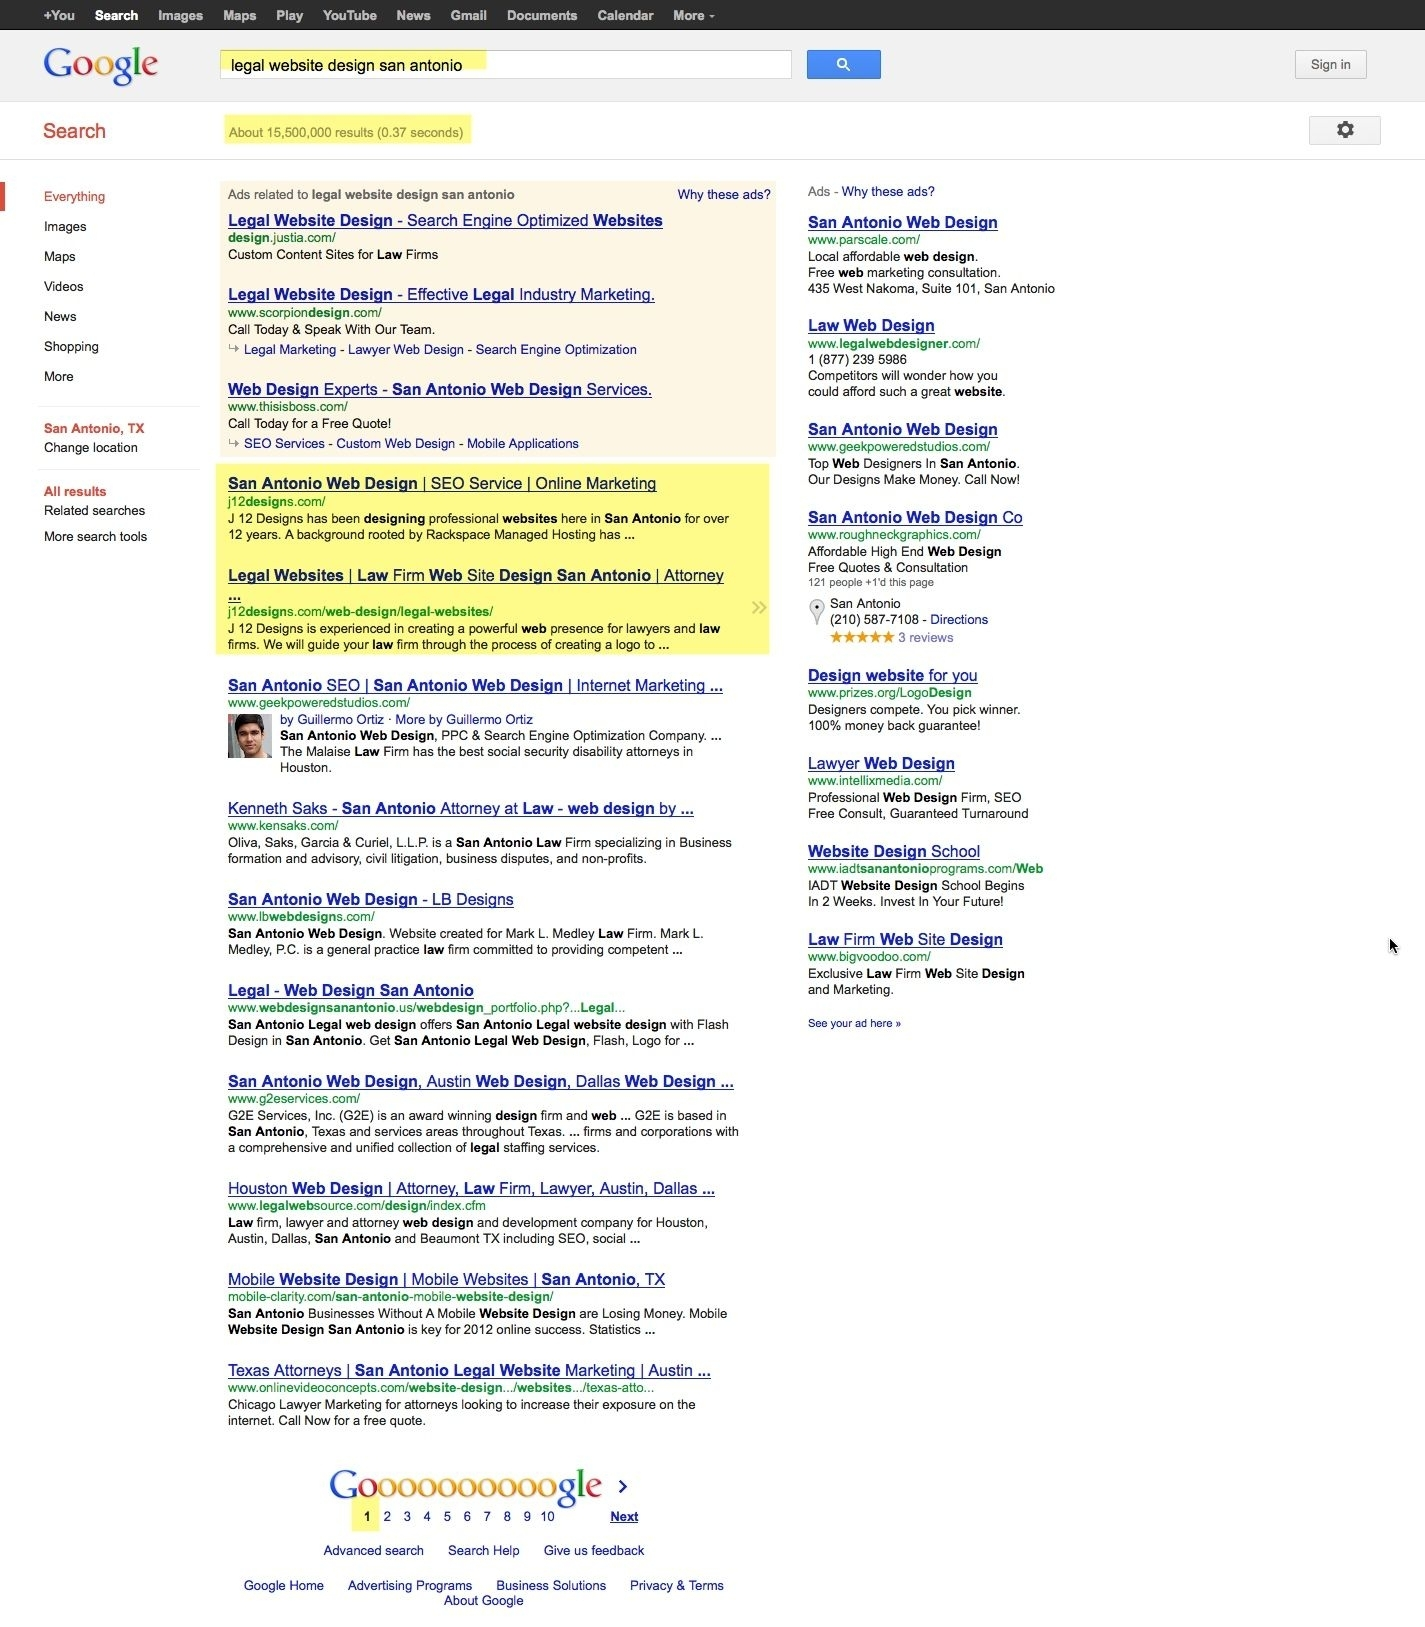 Legal Website Design Search Result | Seo (Search Engine